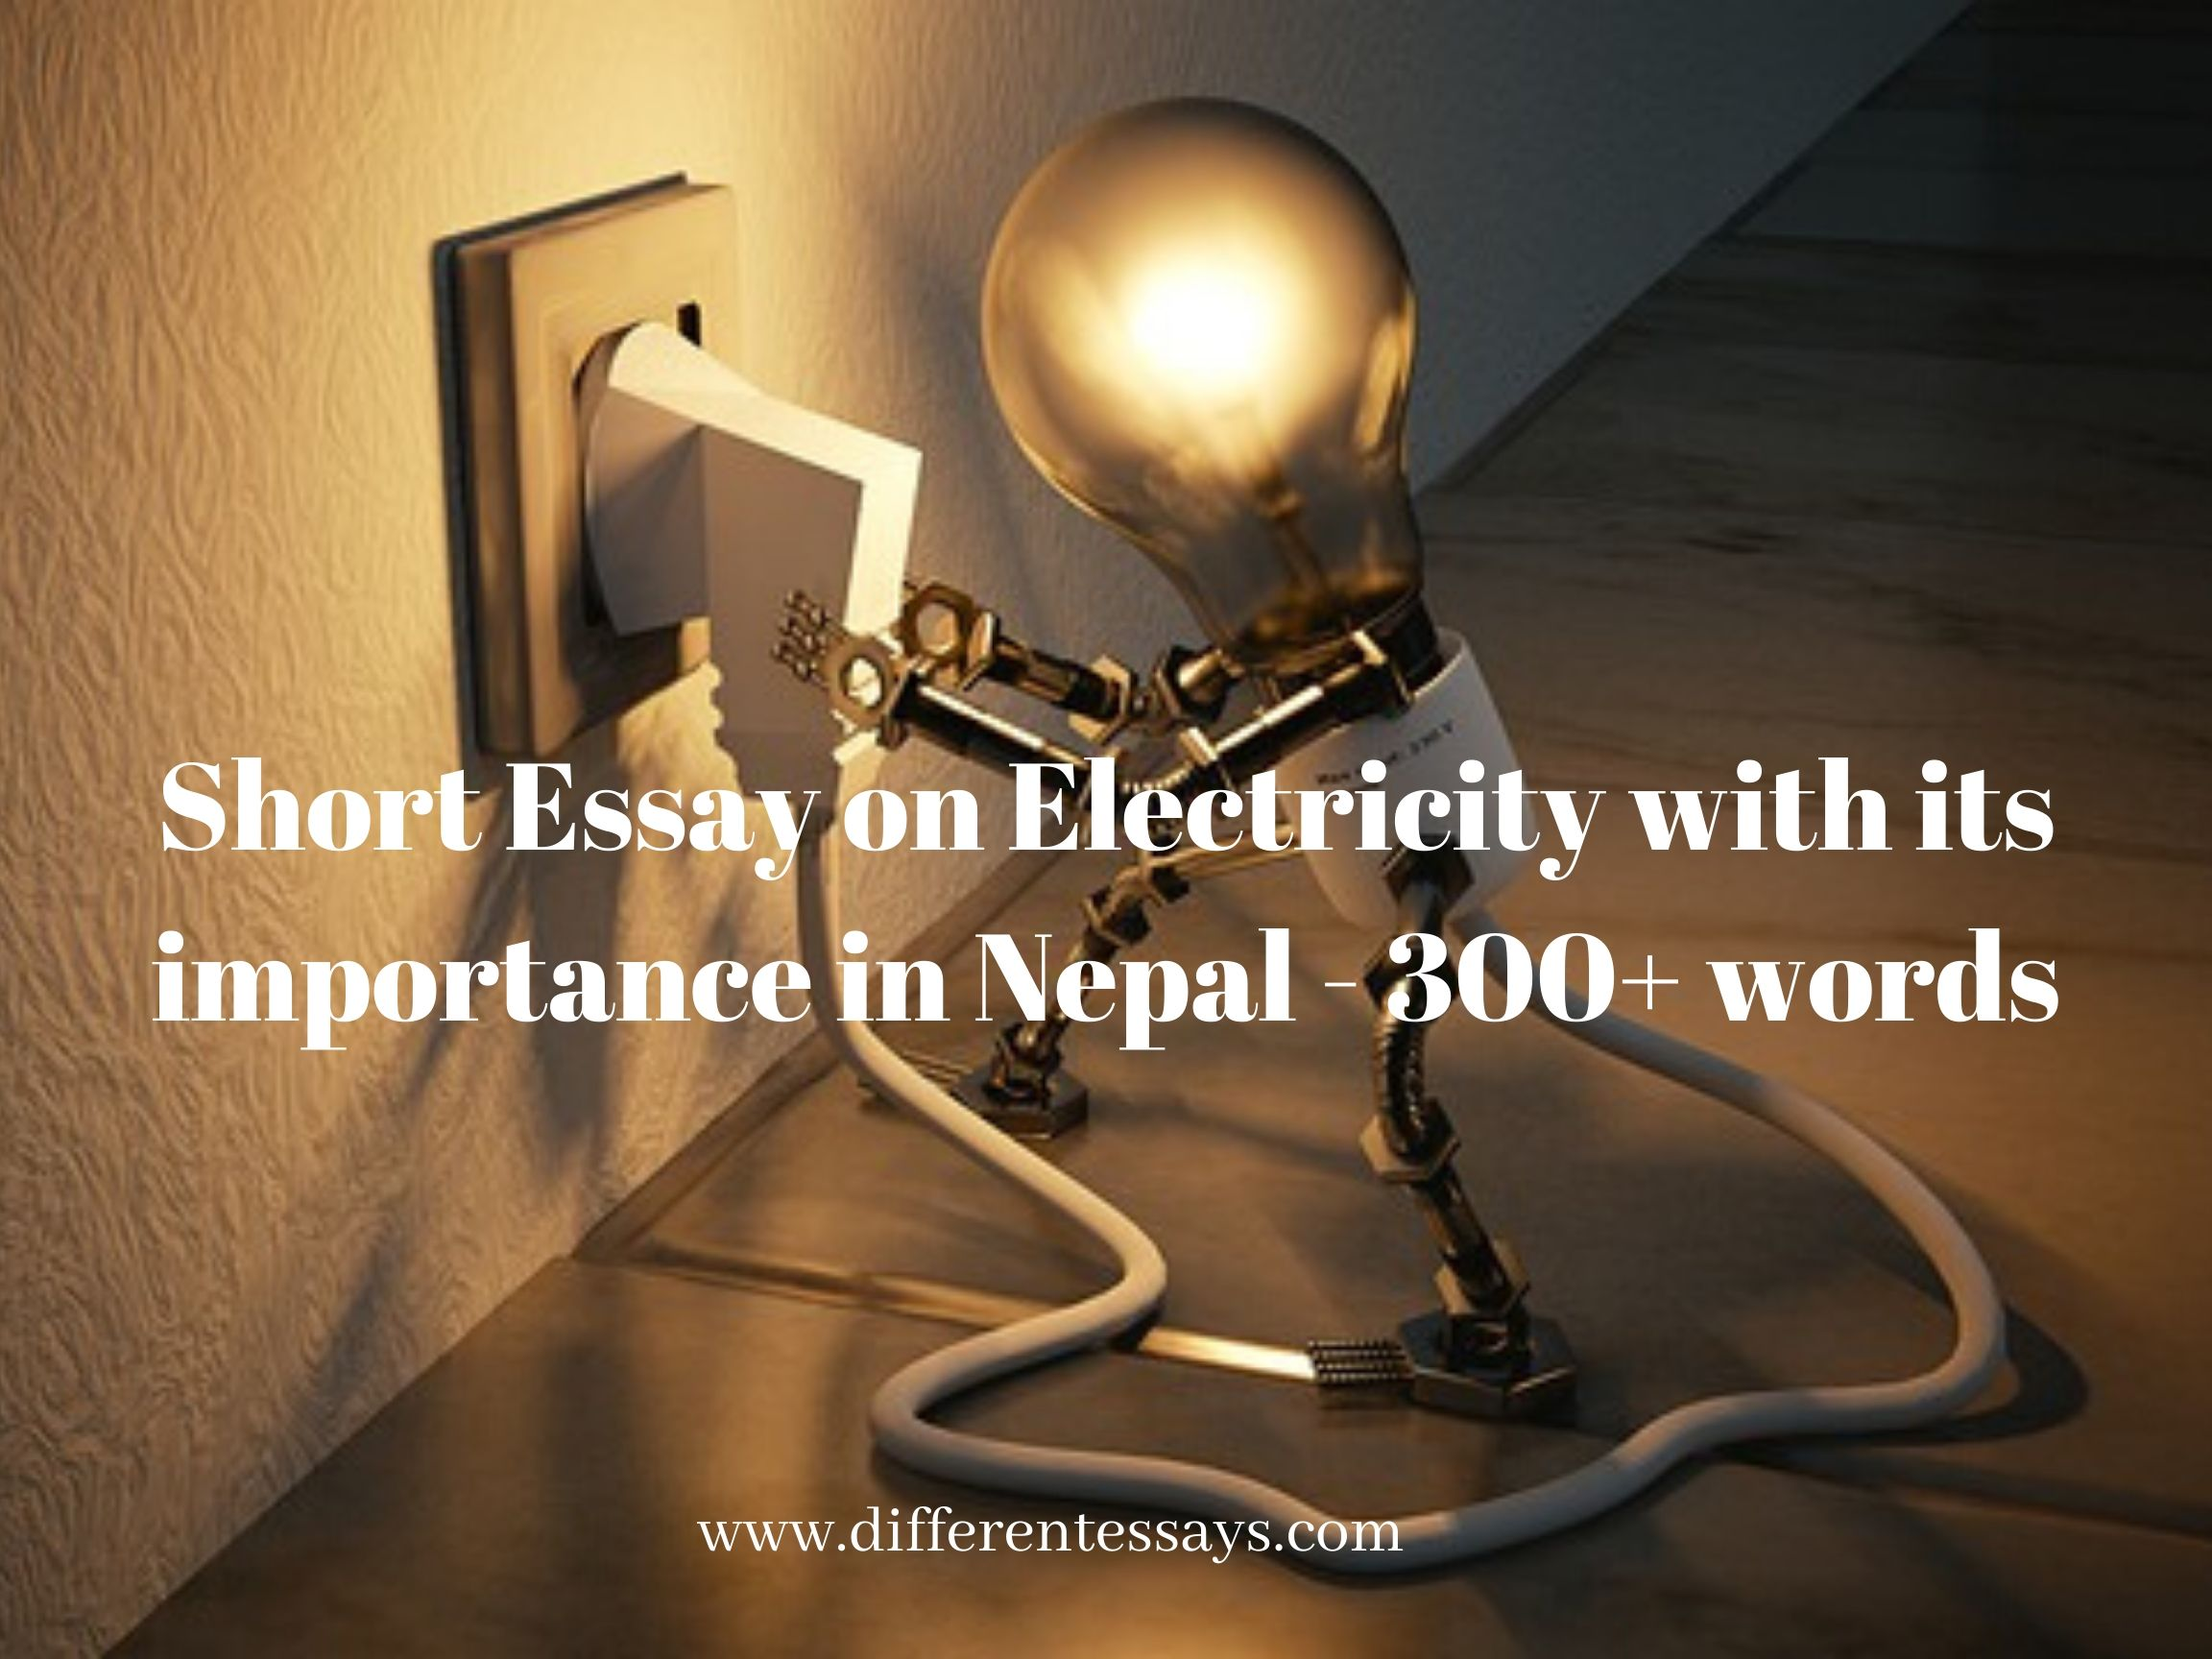 Short Essay on Electricity with its importance in Nepal - 300+ words